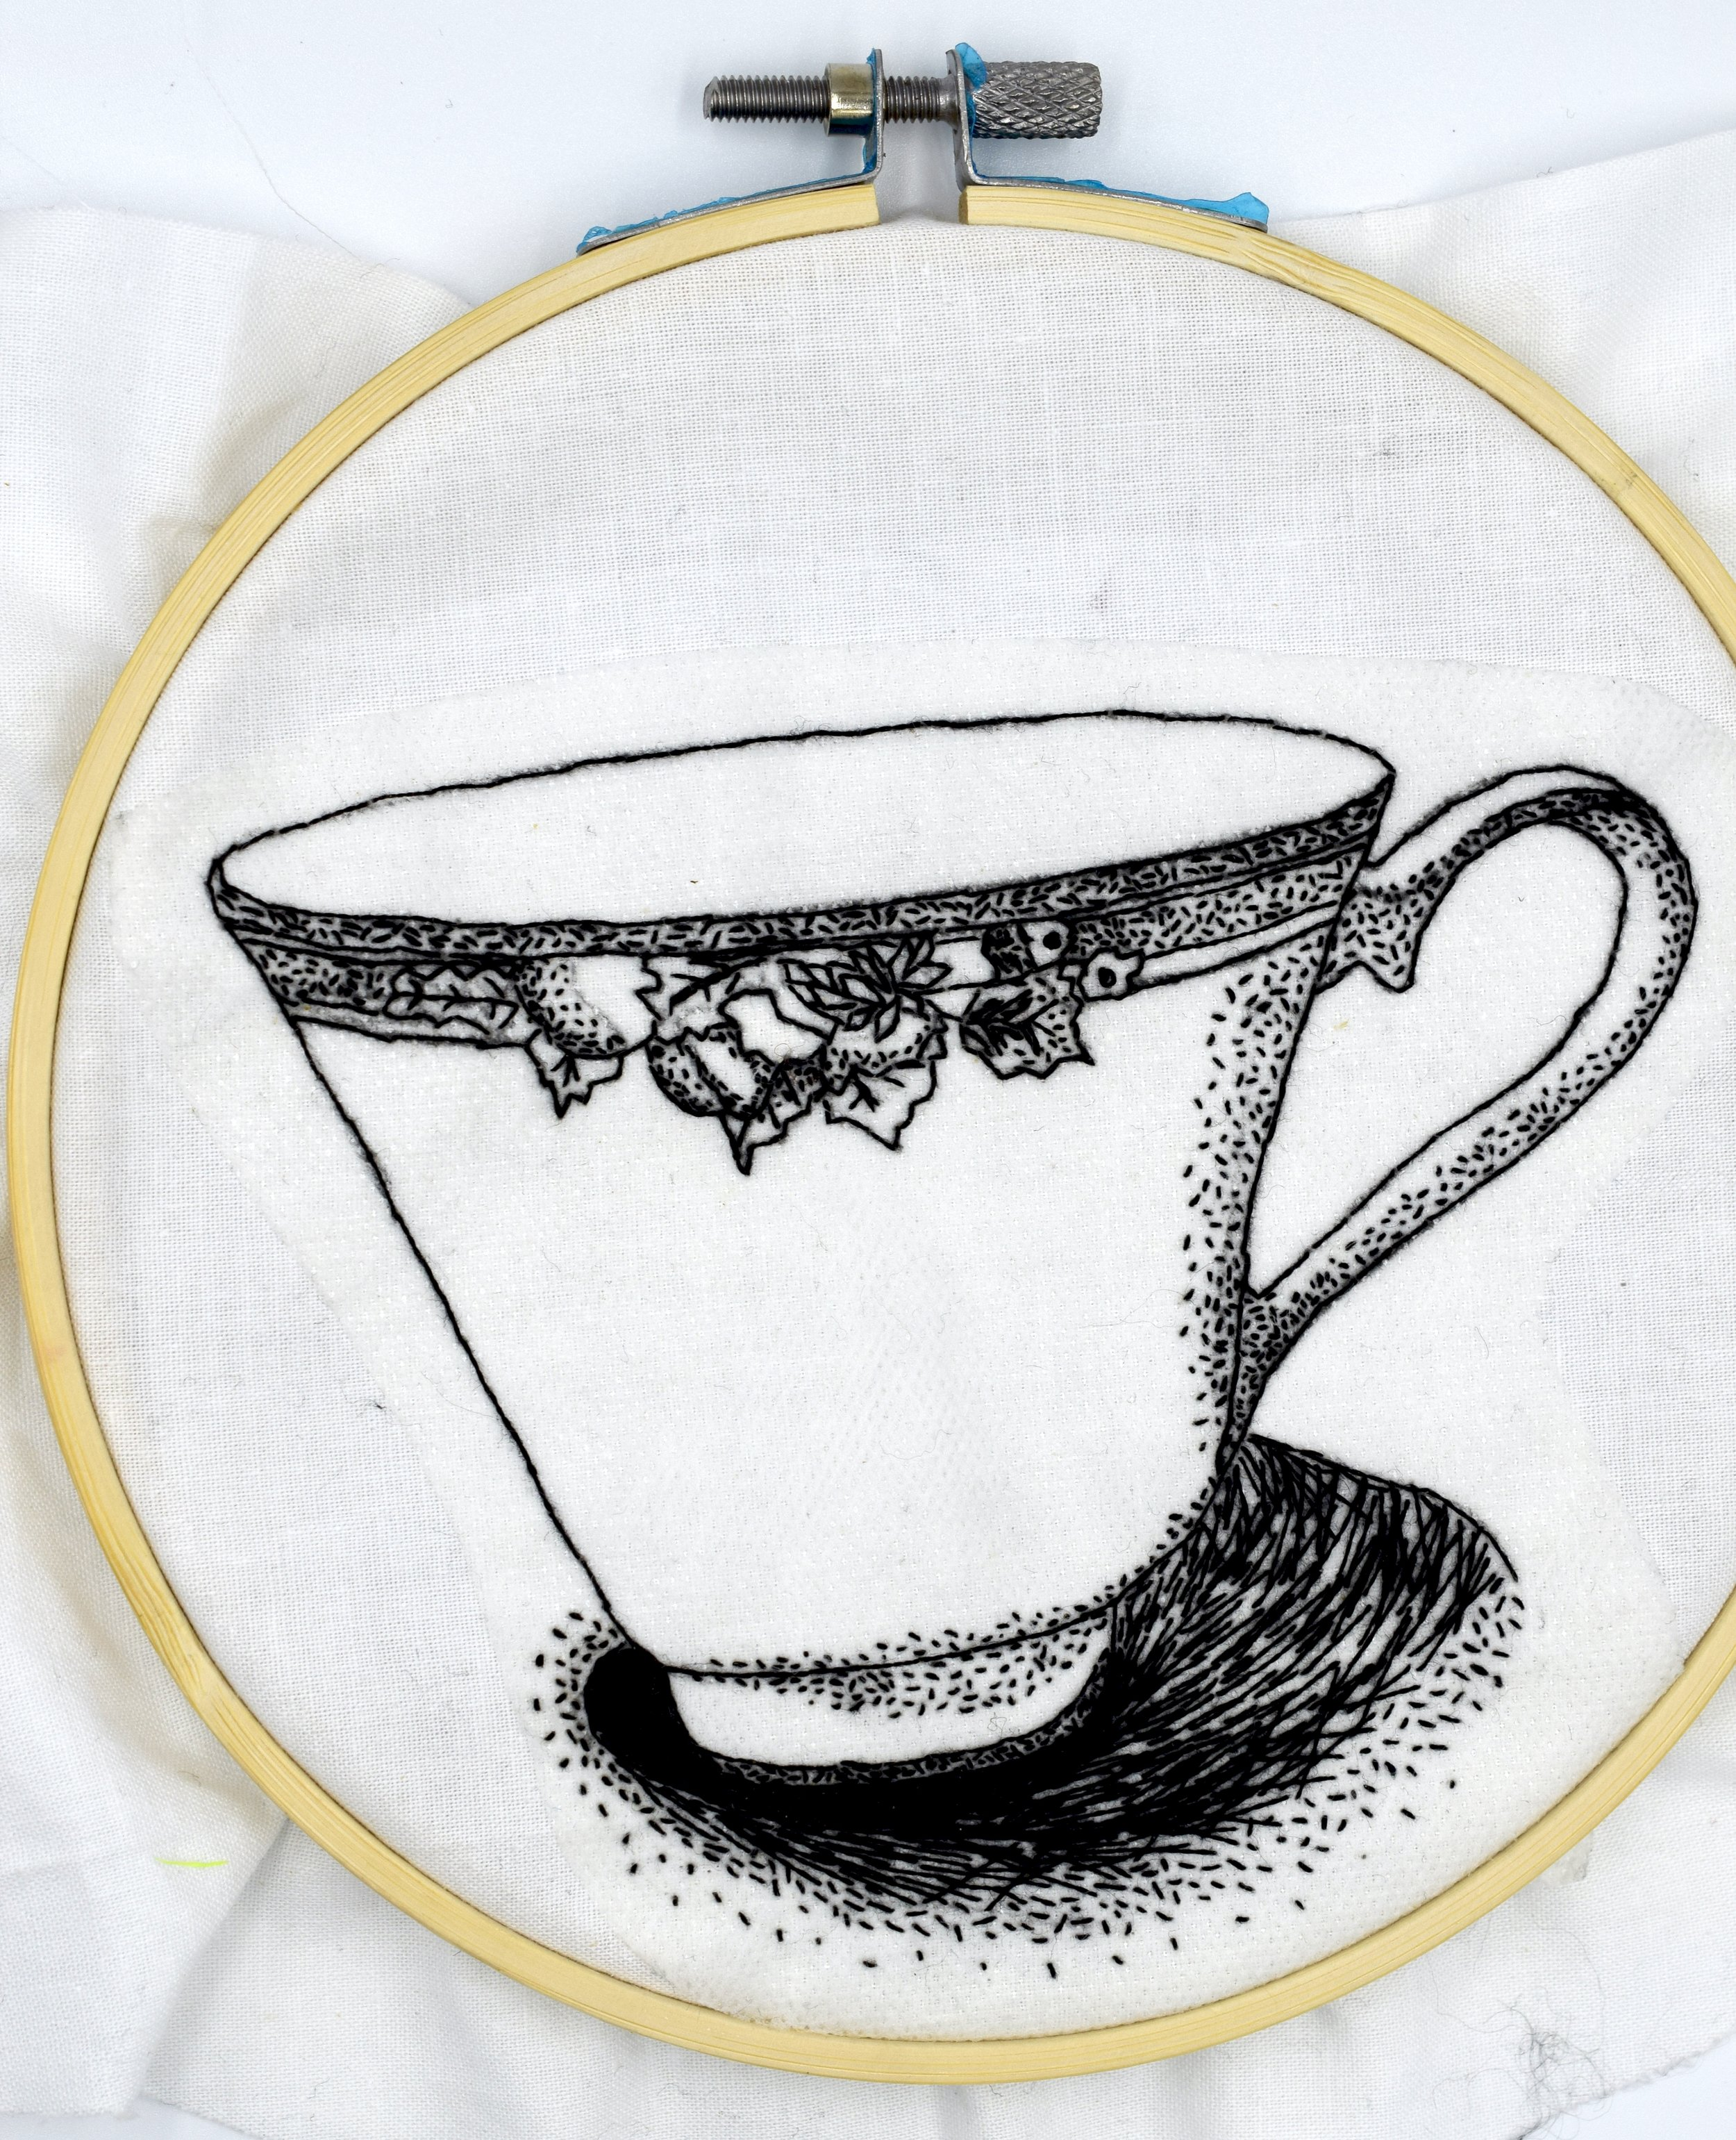 EMBROIDERED STIPPLING; USING A SINGLE THREAD, I CREATED A DETAILED EMBROIDERED DRAWING WITH STIPPLING